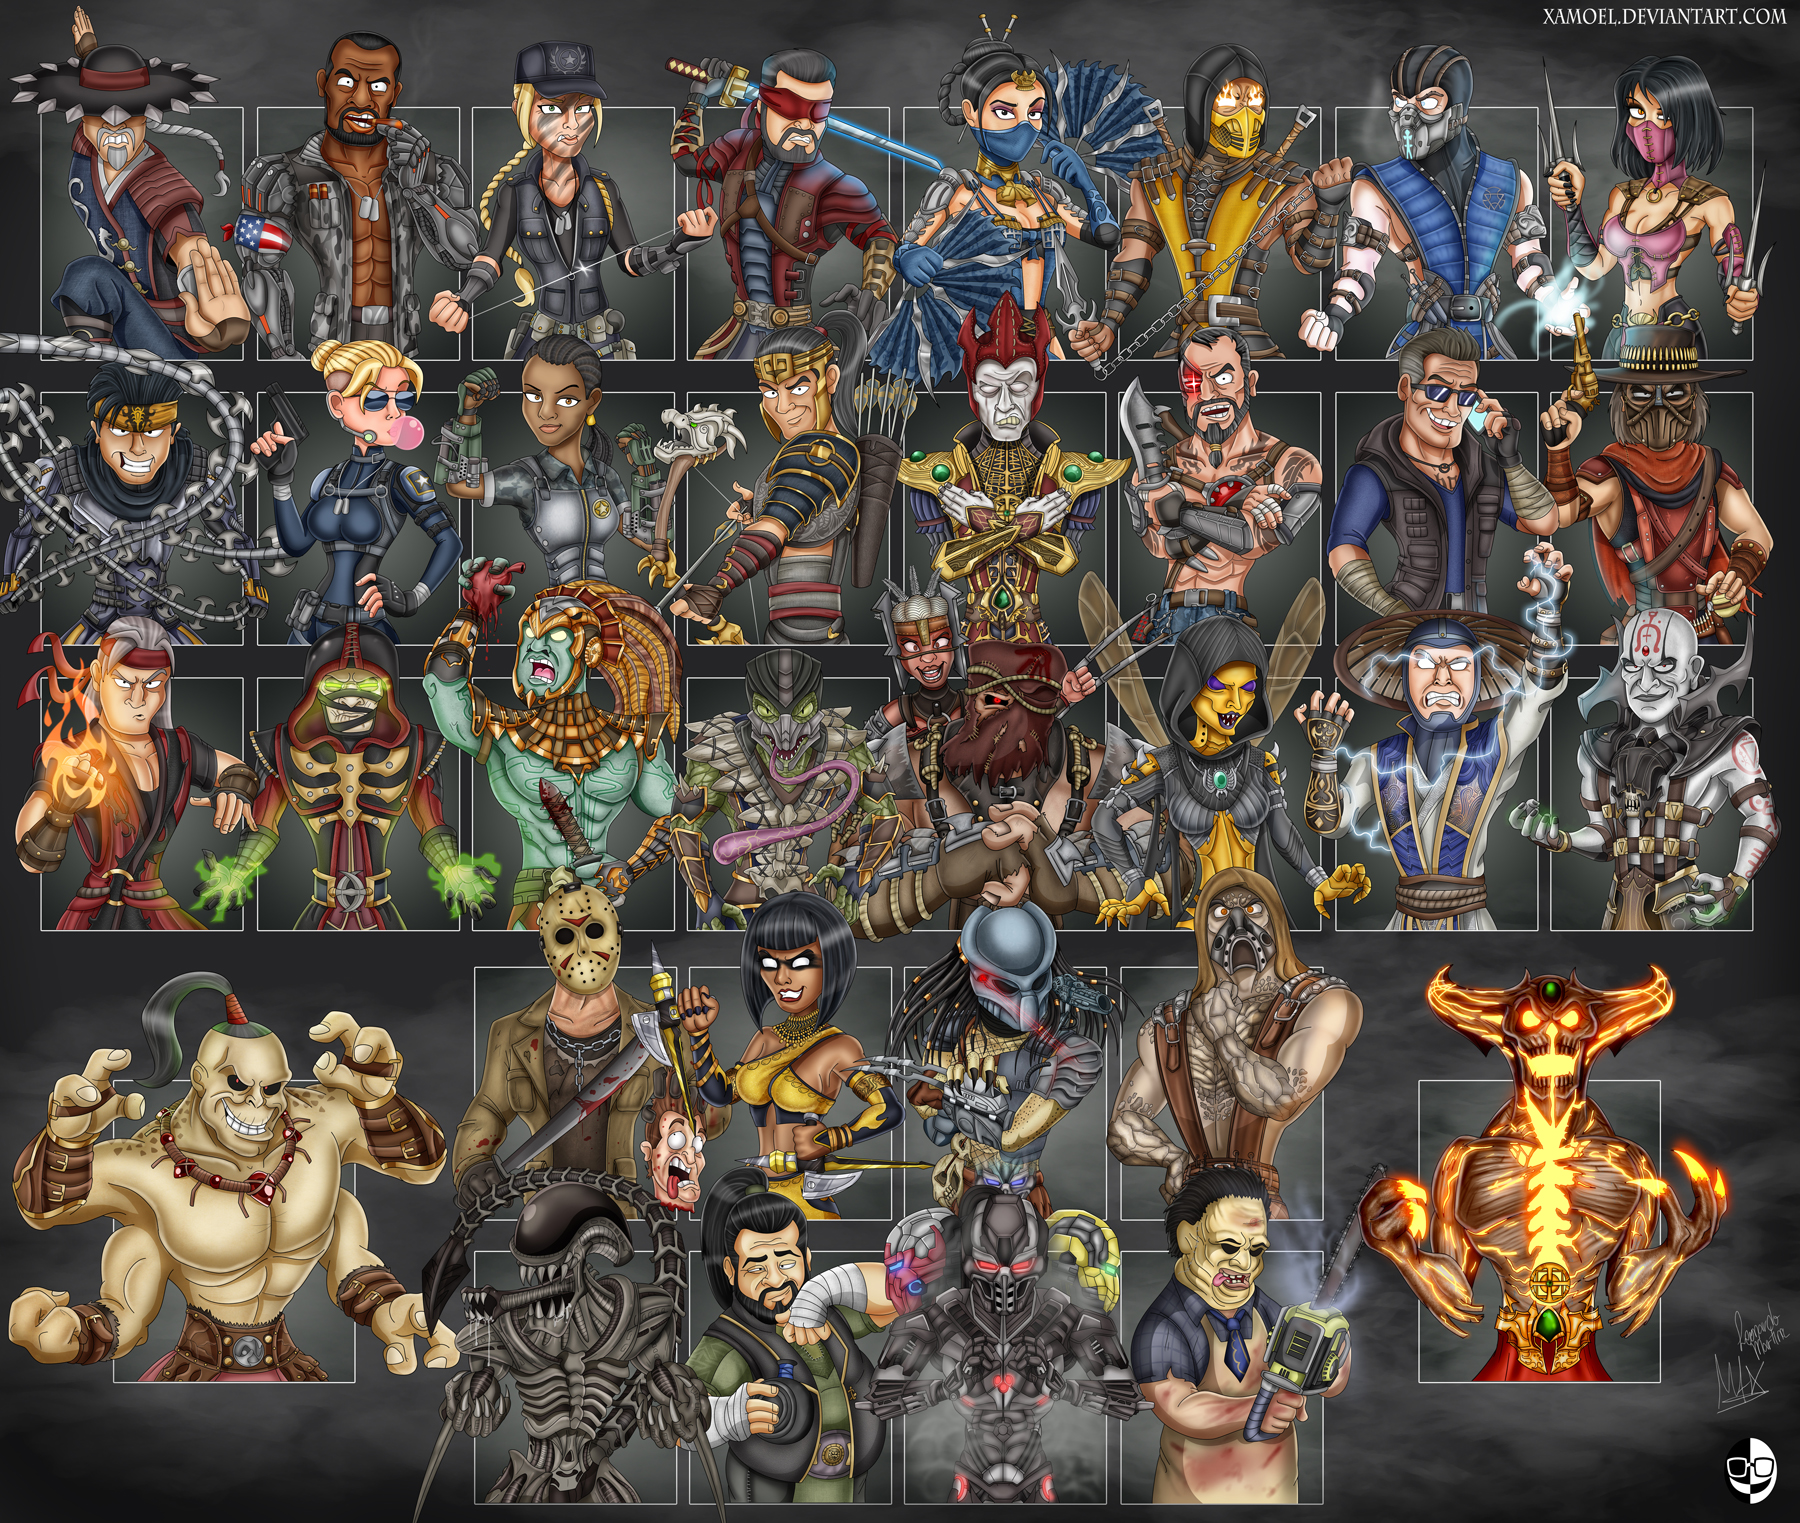 Mortal Kombat Xl By Xamoel On Deviantart